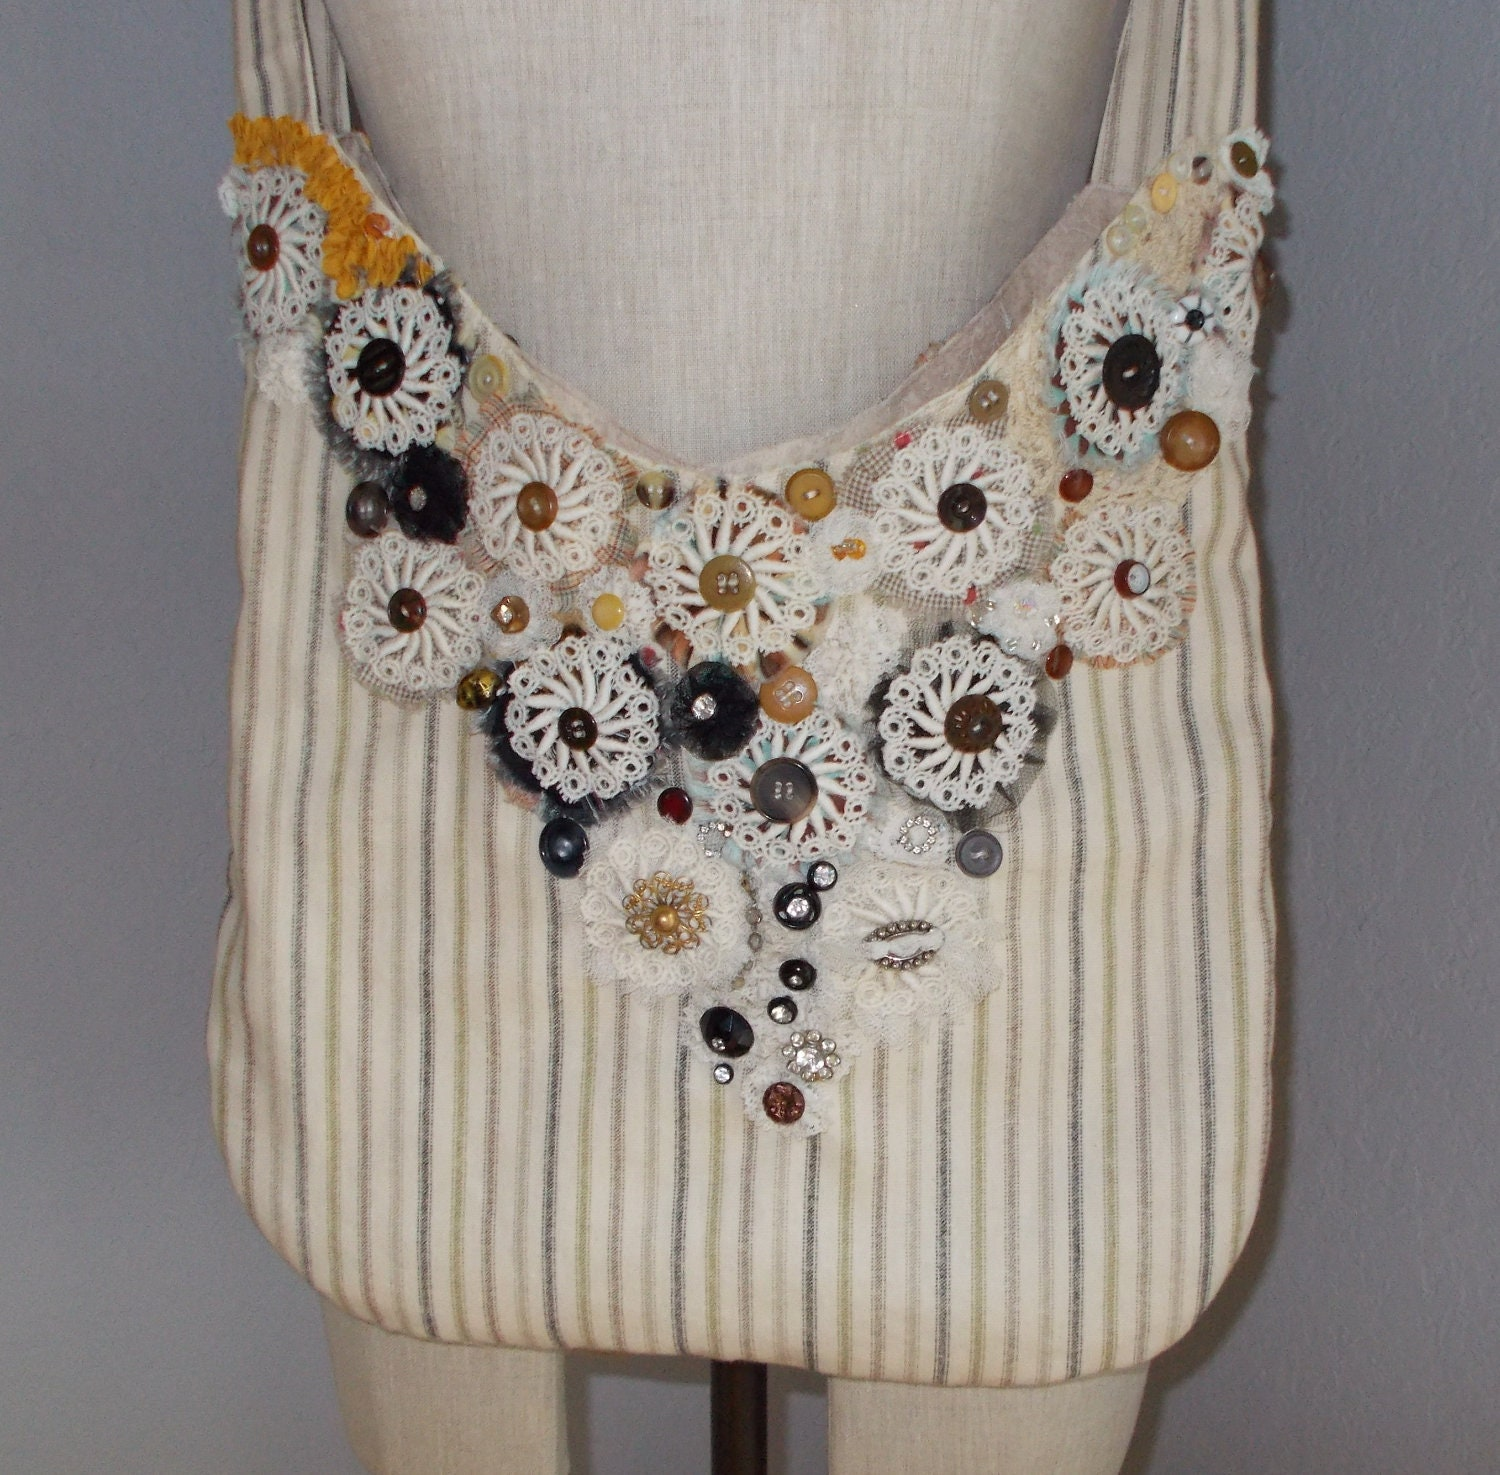 Ticking Shoulder Hobo Bag Crochet Doilies Lace by MirtaBurns